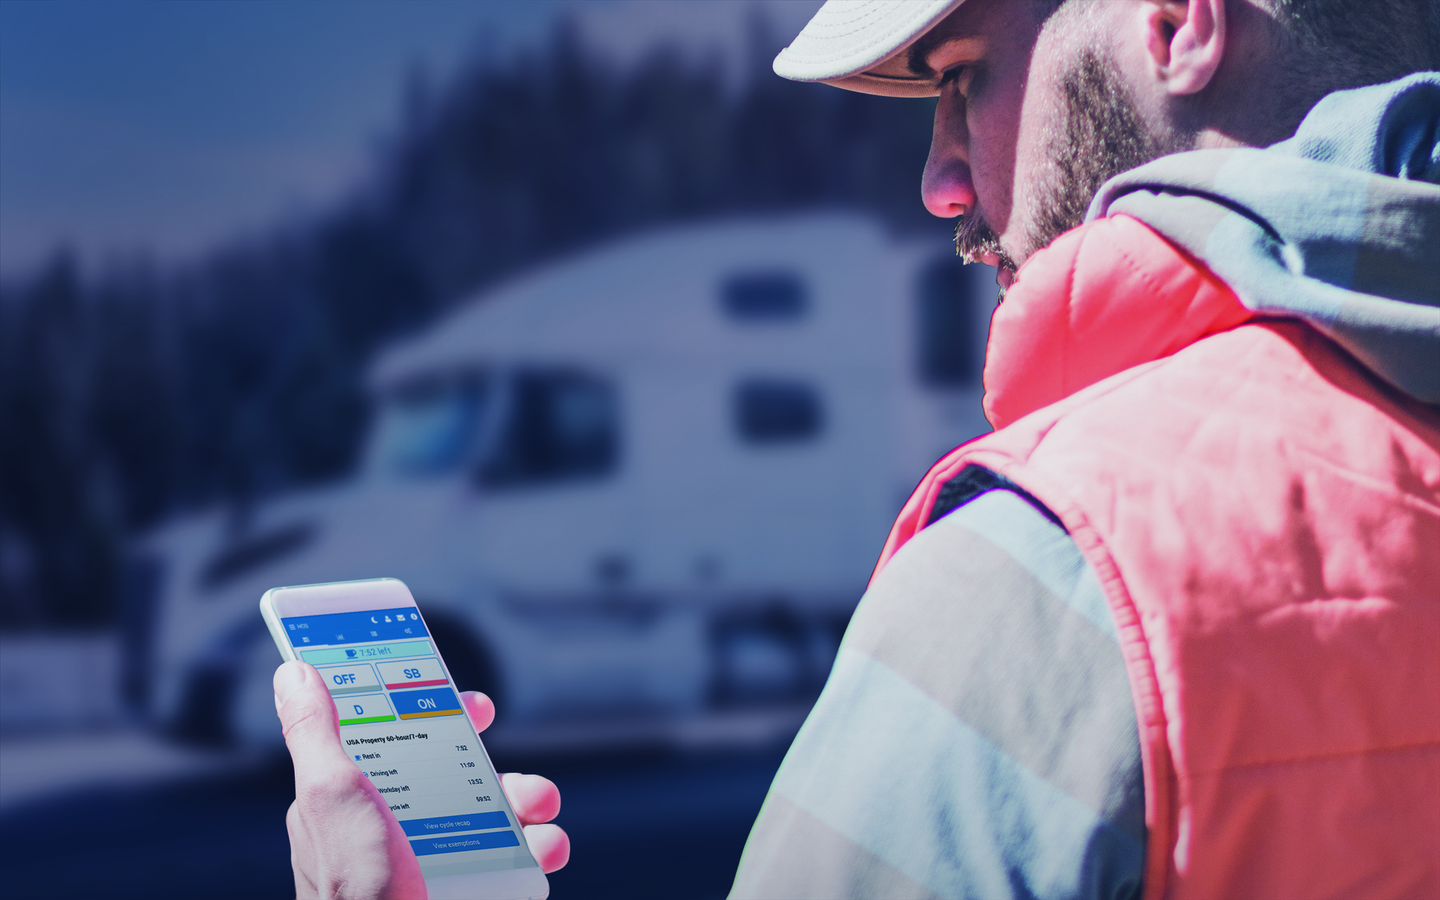 A few of the driver behavior metrics that fleets can monitor with Geotab telematics include speeding over the posted speed limit, harsh braking, sharp cornering, backing up while driving, after hours use of vehicle and riving with no seat belt.